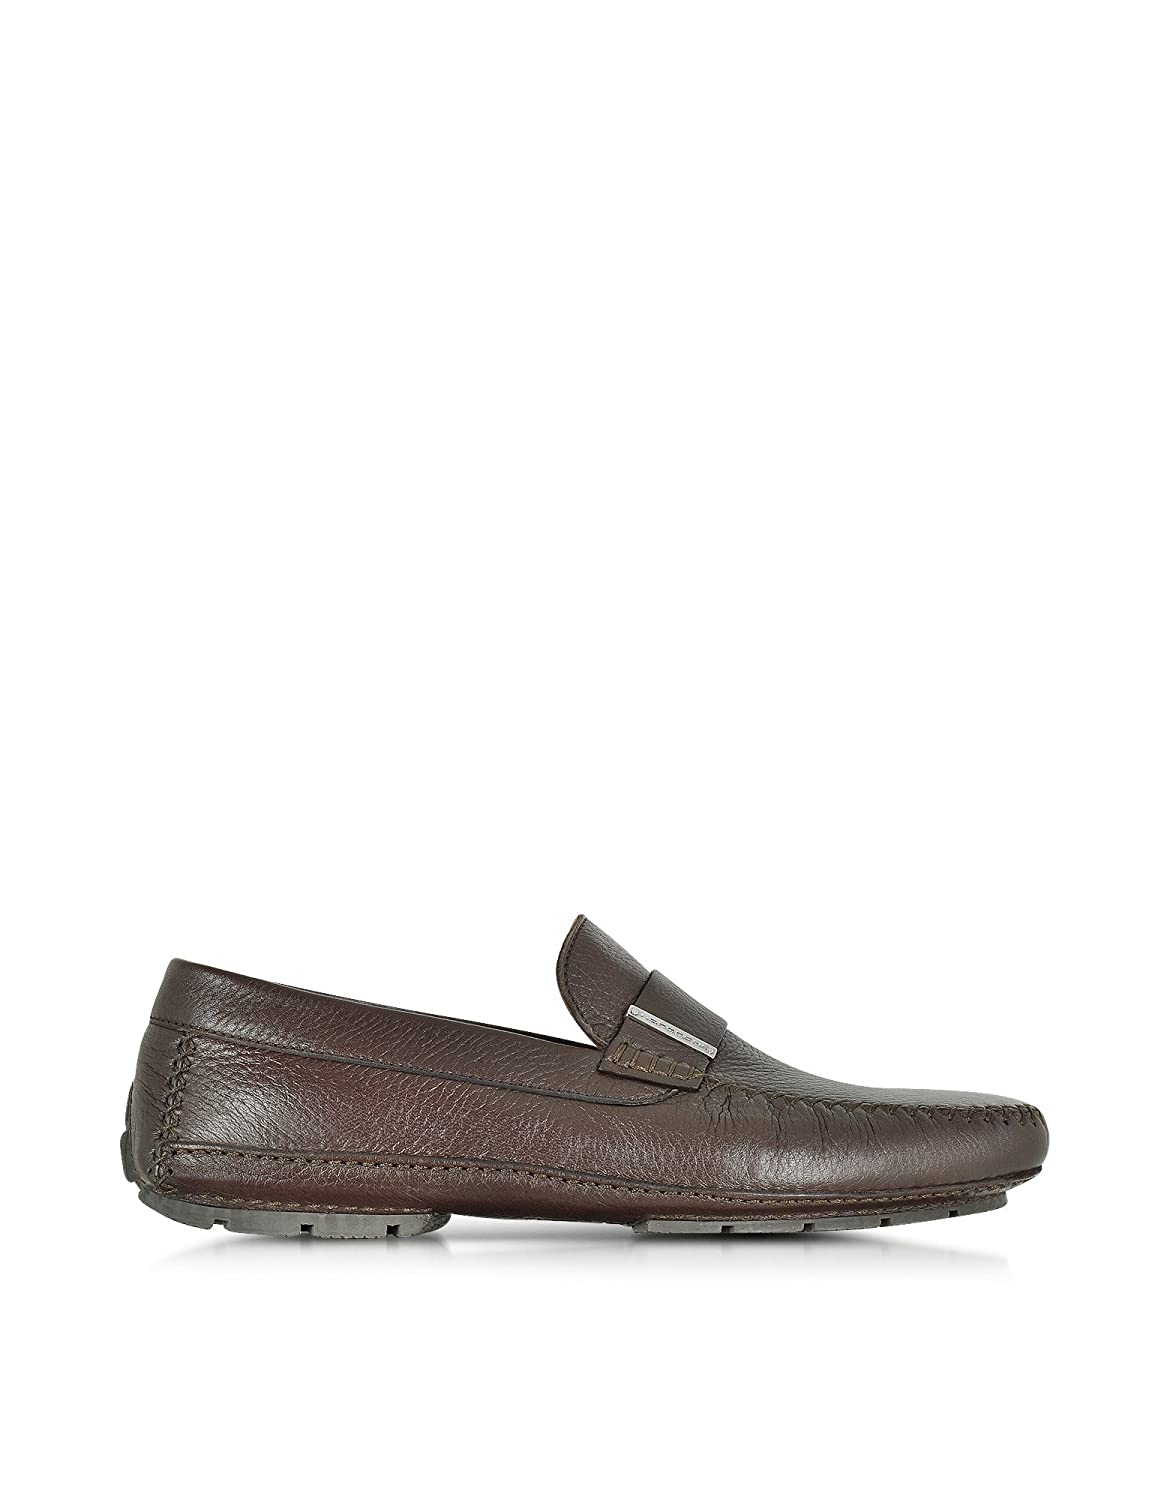 MORESCHI MEN'S 41426SHMIAMIDKBROWN BROWN LEATHER LOAFERS